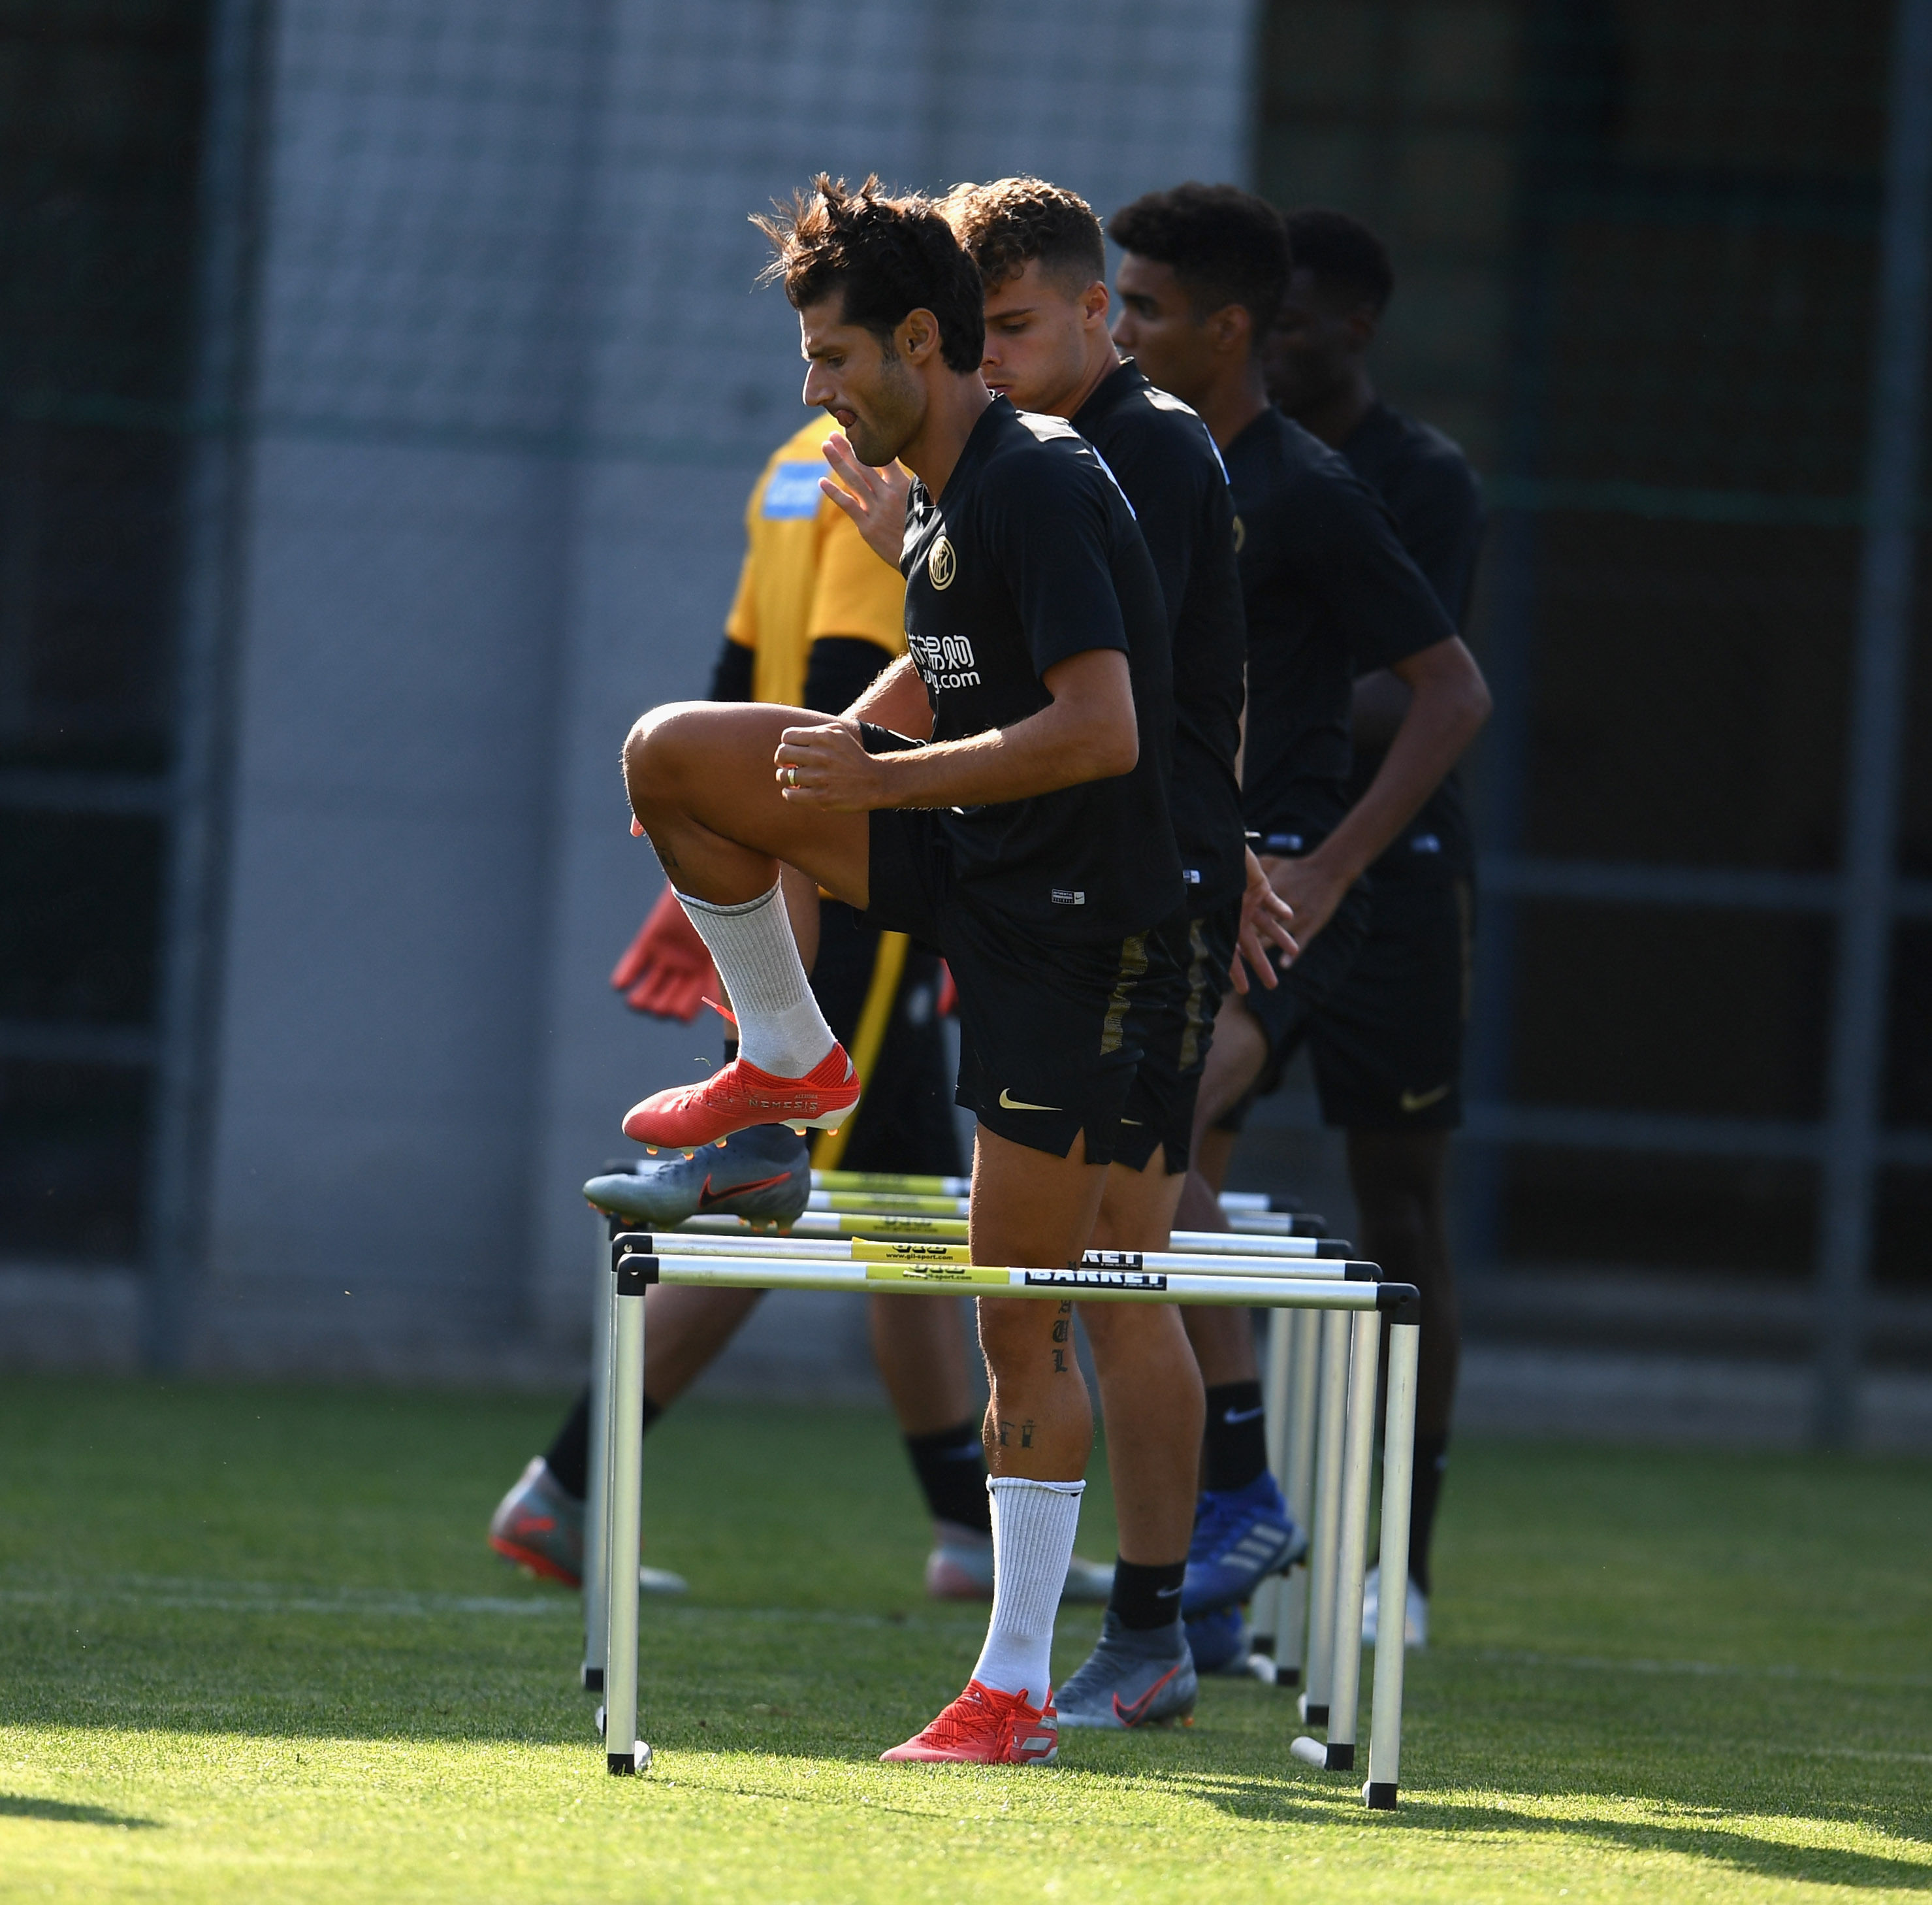 #Lugano2019, Day 6: the best photos from training